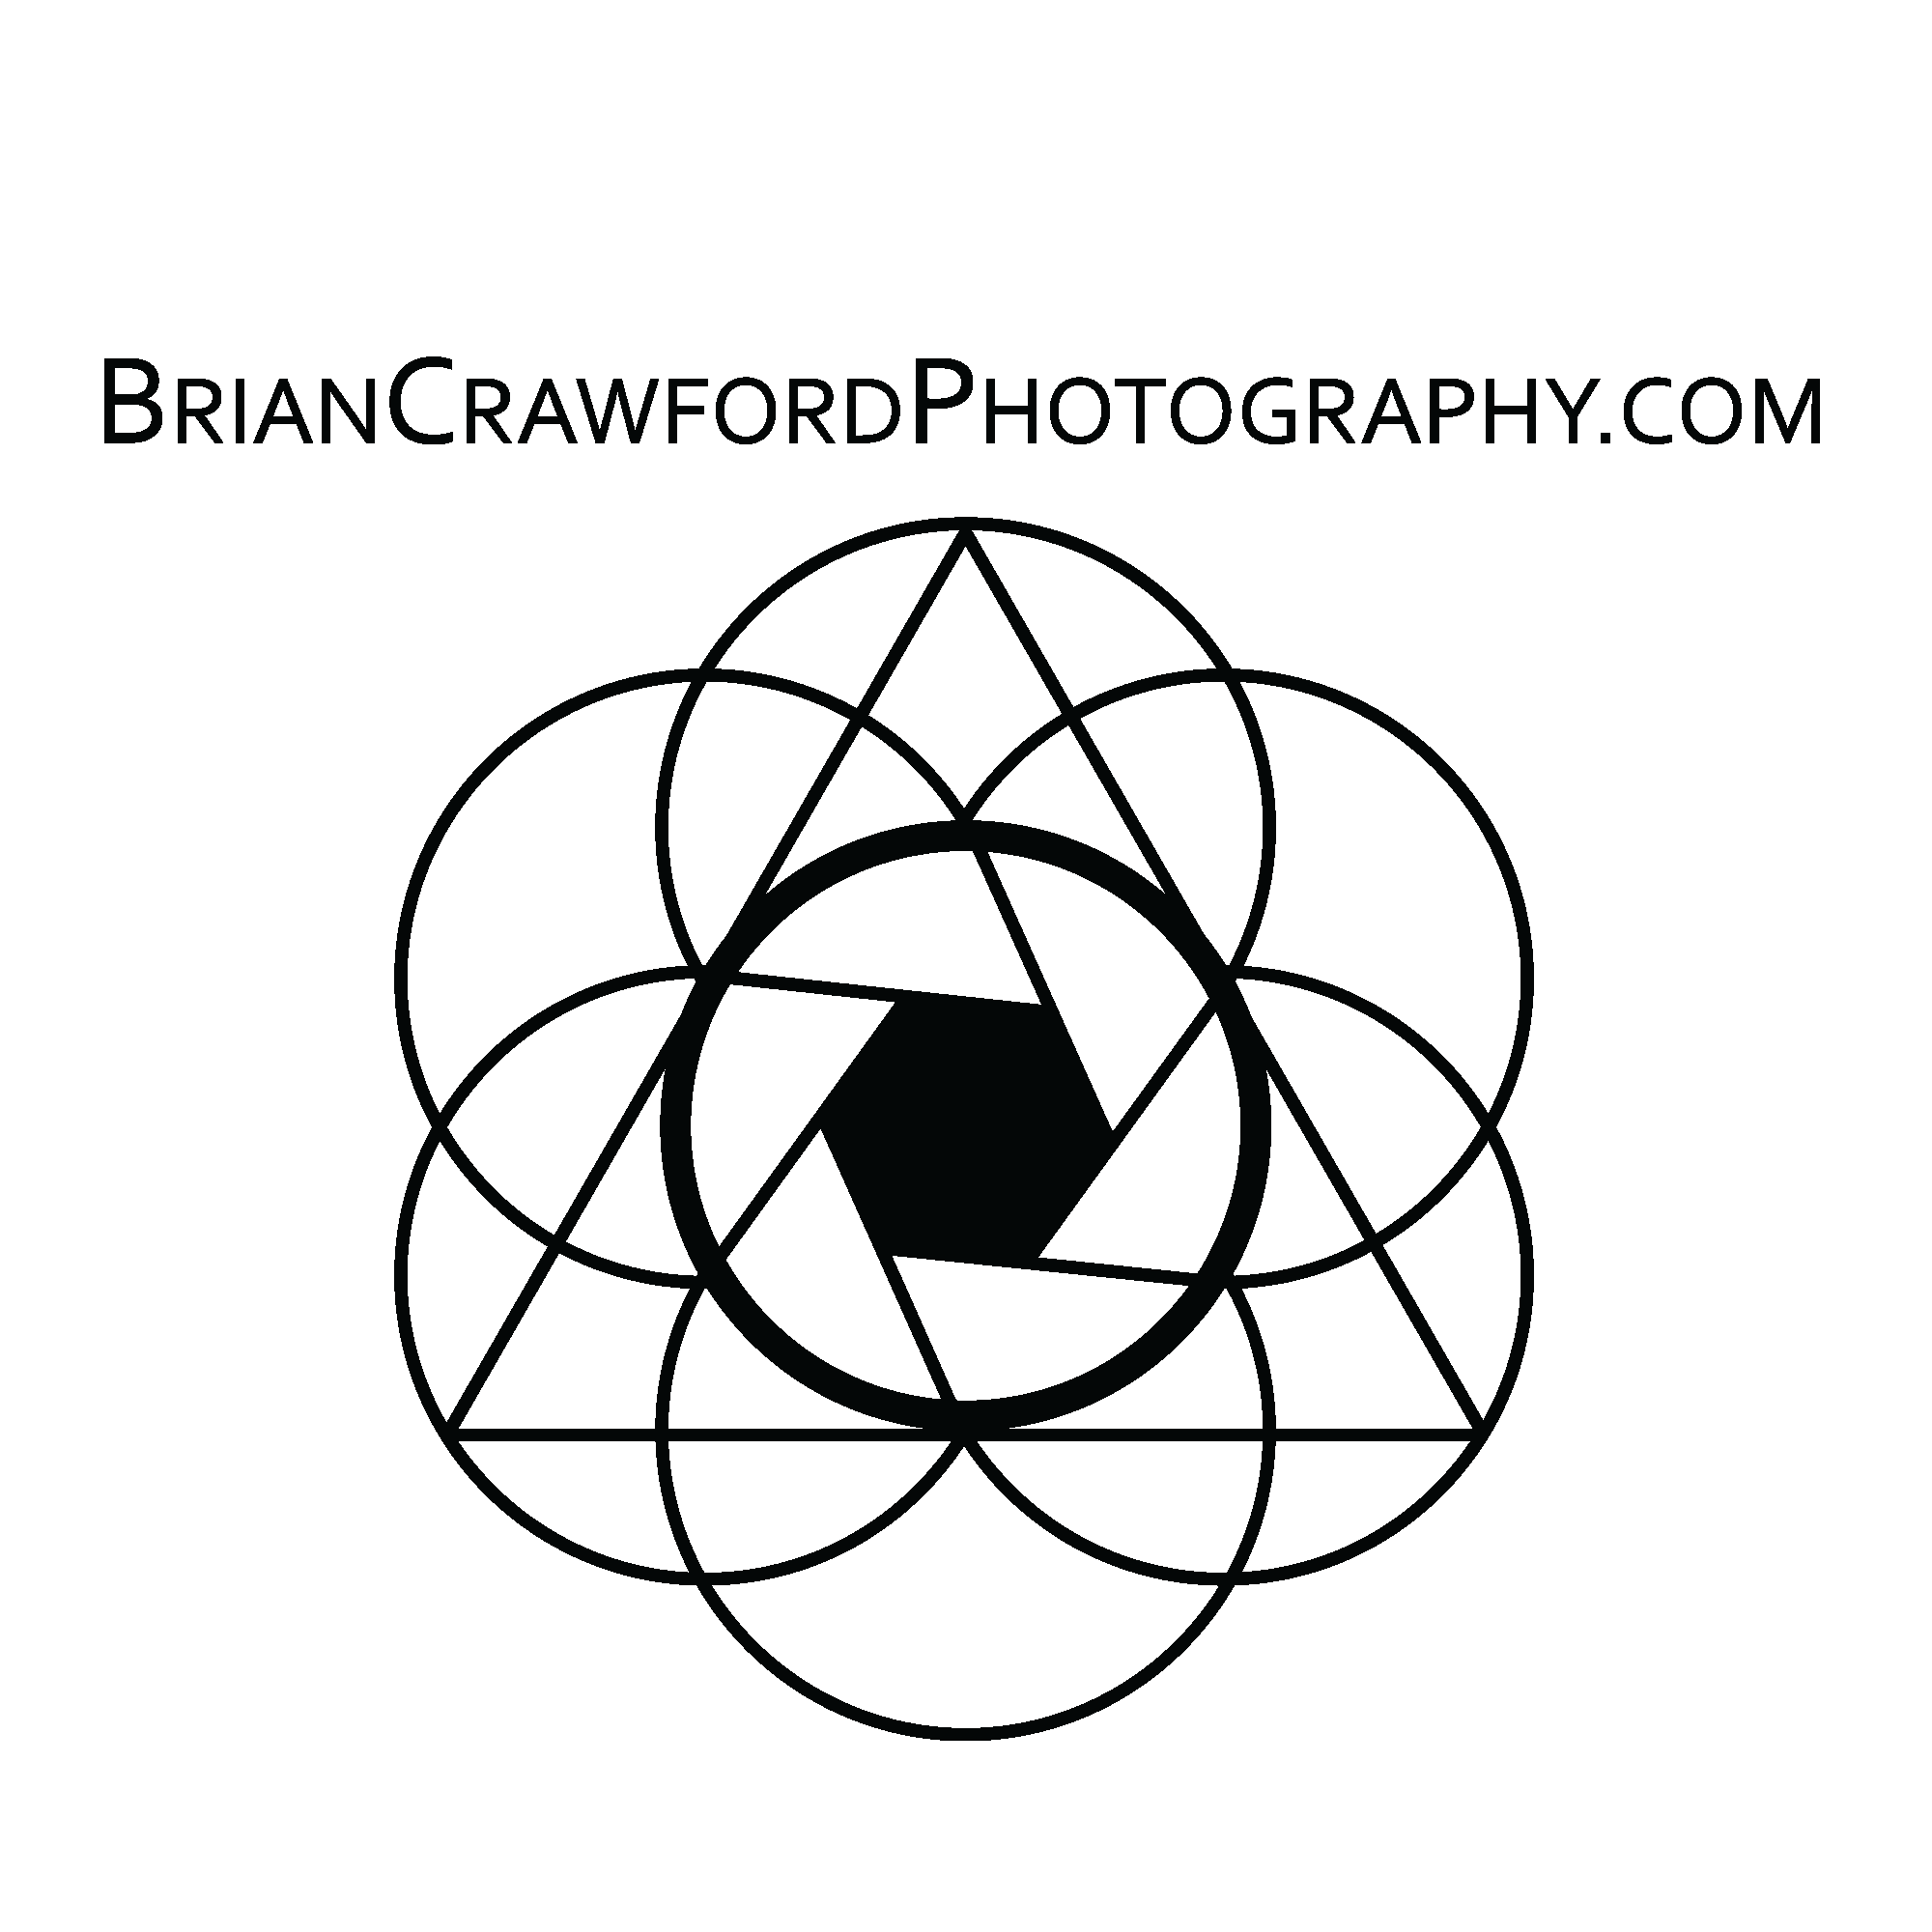 Brian Crawford Photography logo